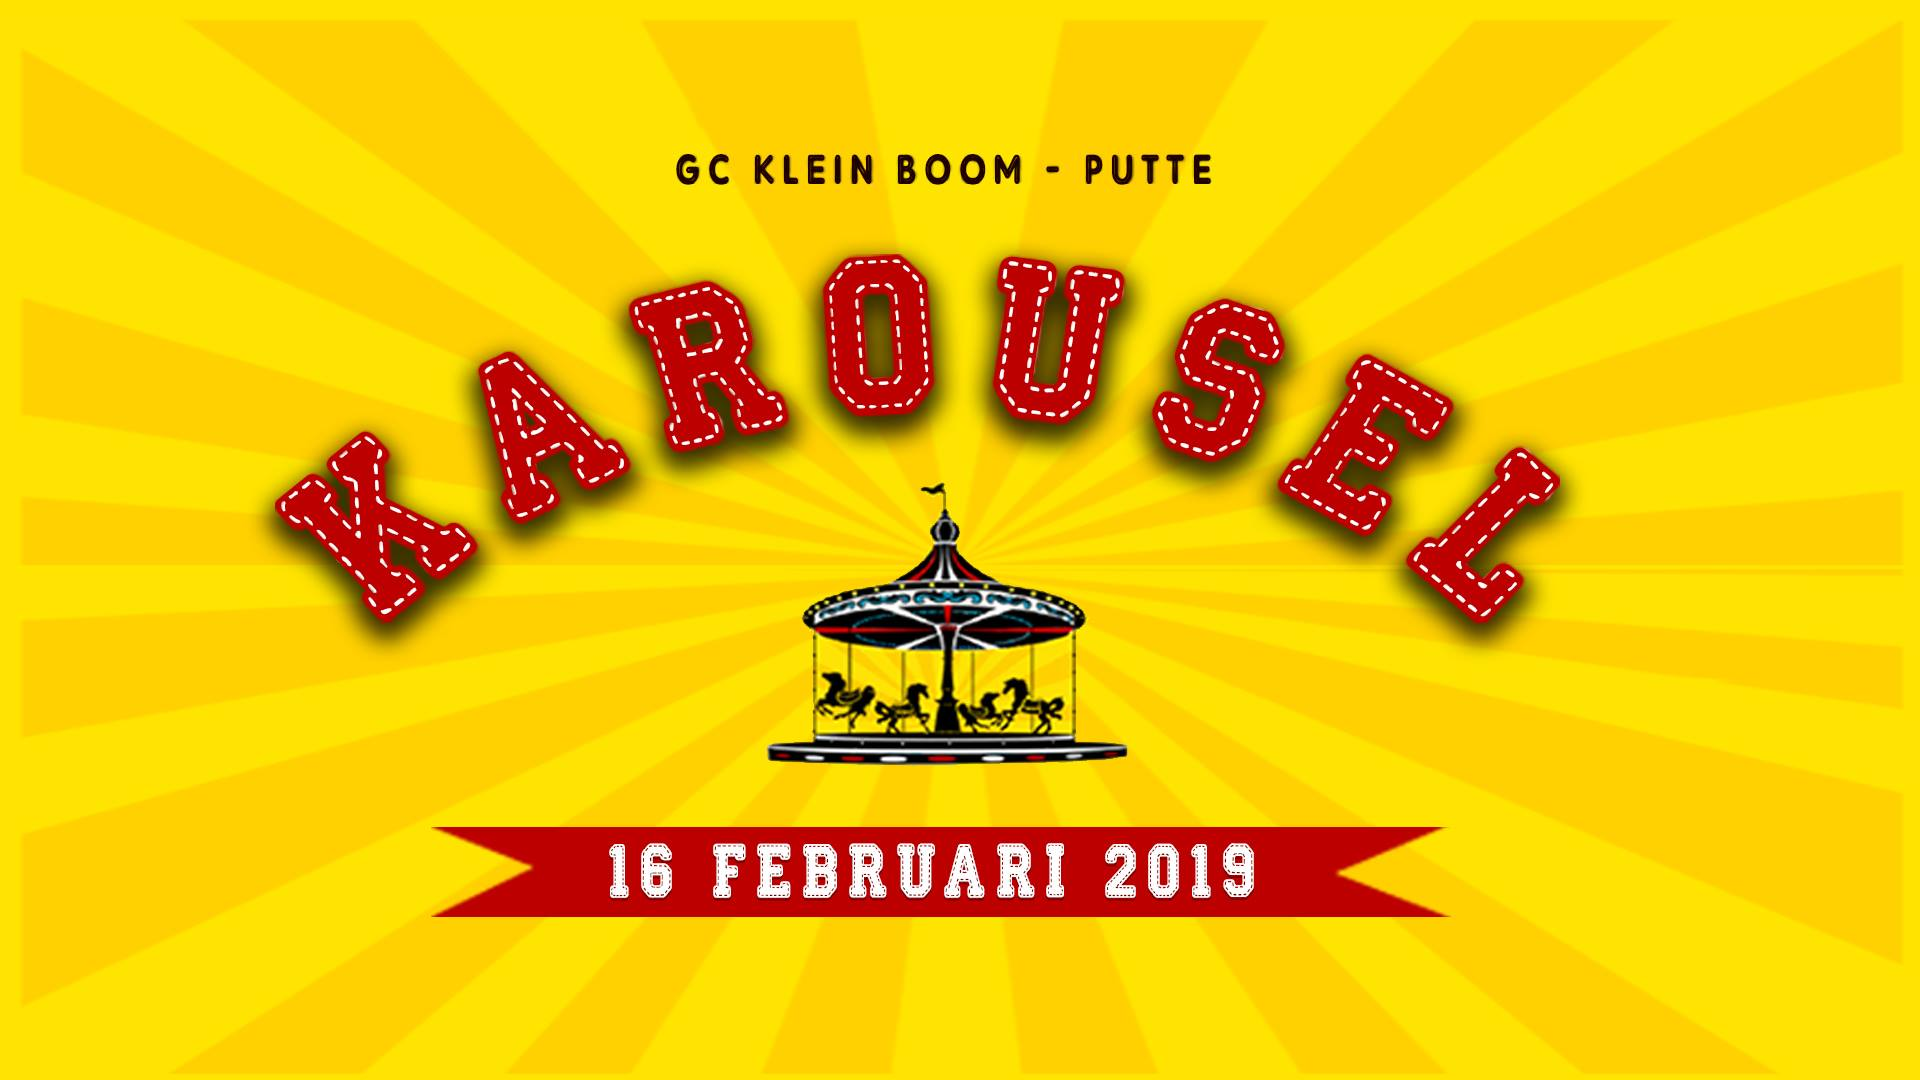 KAROUSEL W/HECTOR COUTO affiche op 16/02/2019